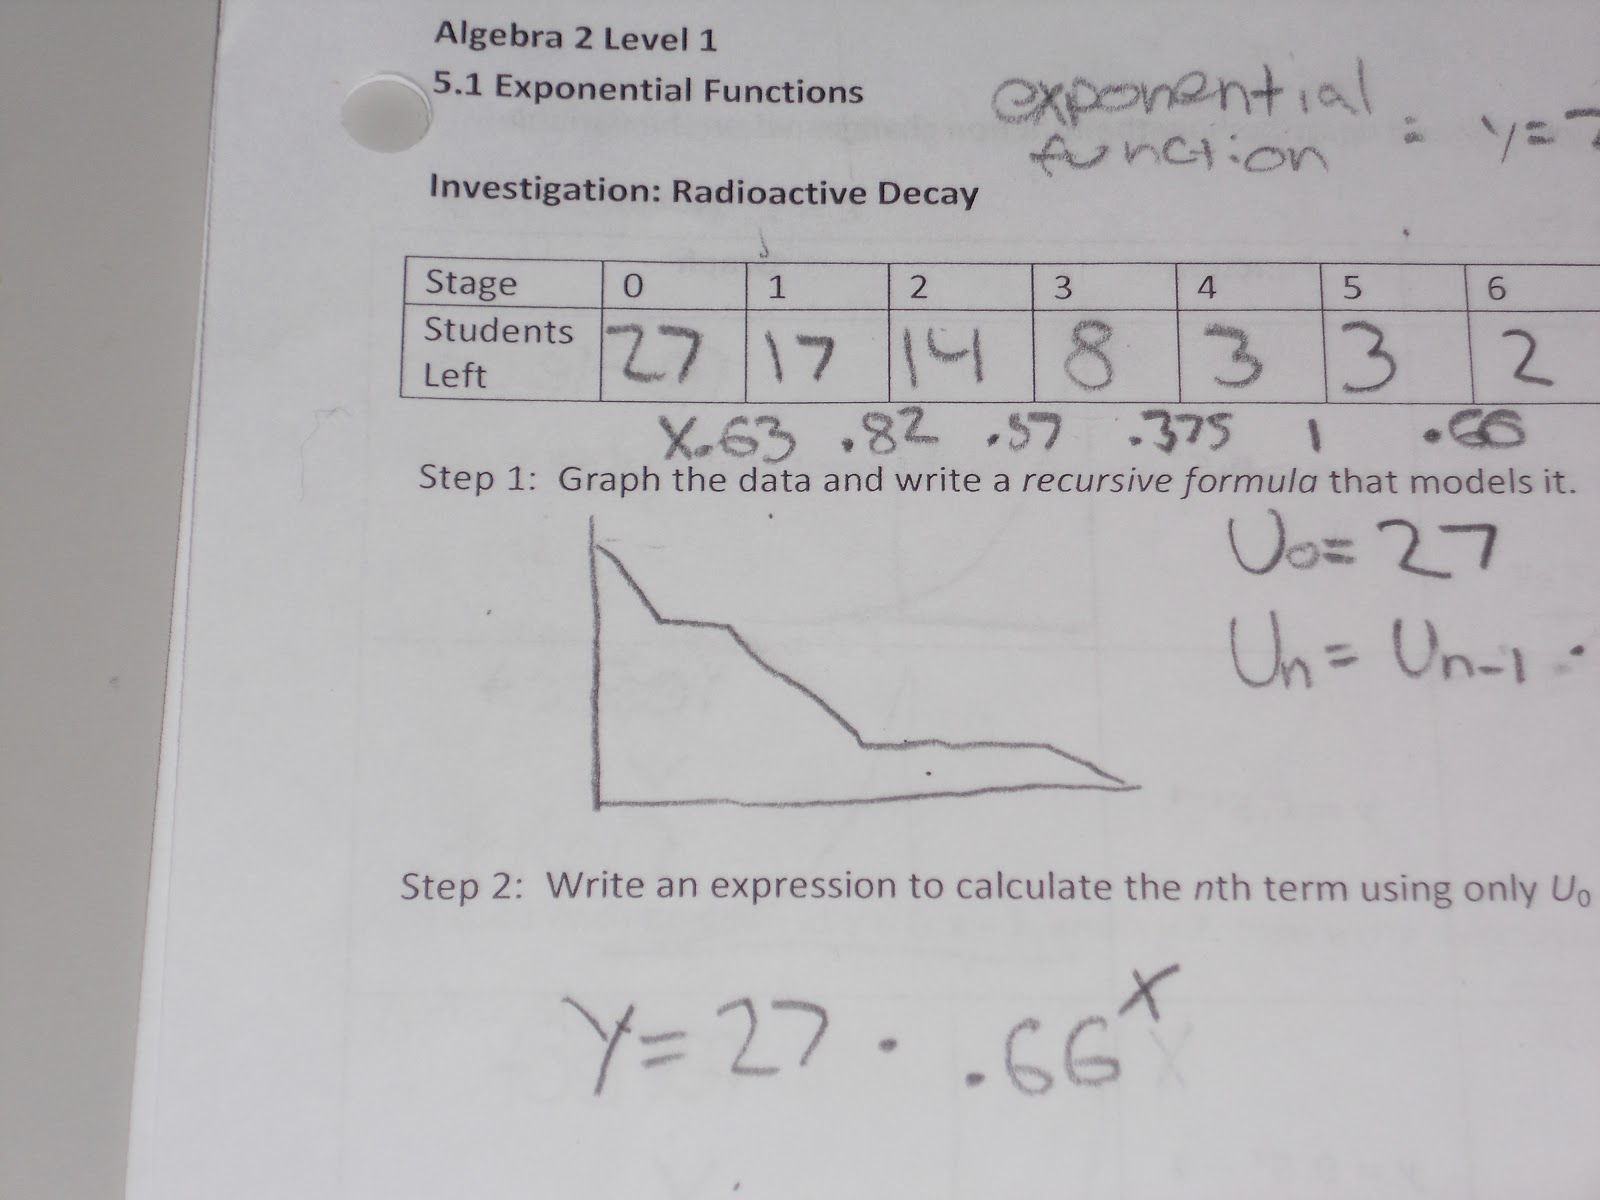 Pogact S White 1 Algebra 2 Level 1 Blog 5 1 Exponential